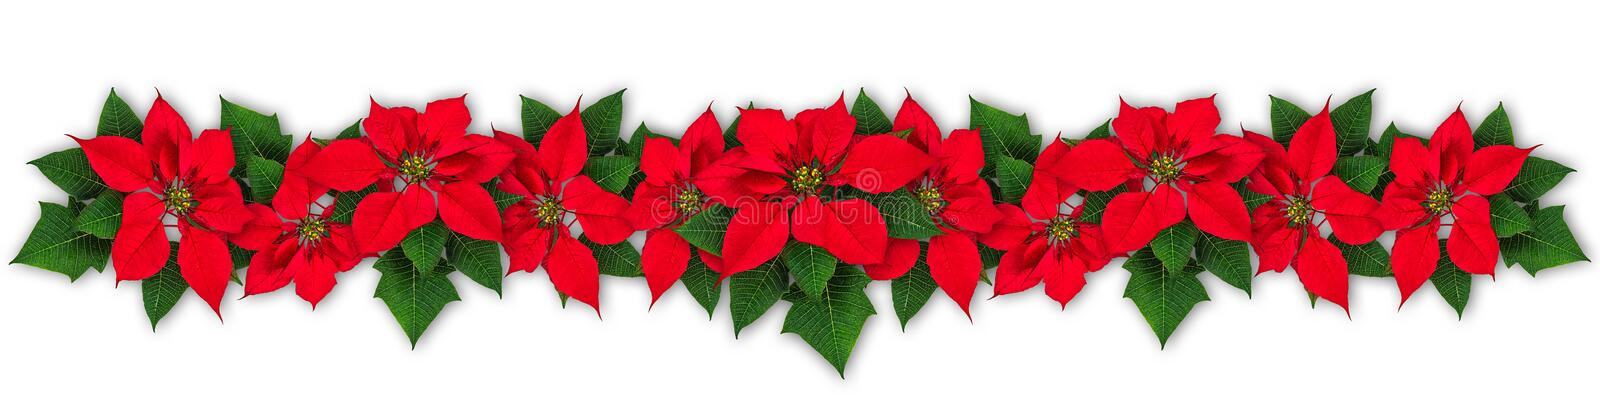 Poinsettia flower wreath stock photos